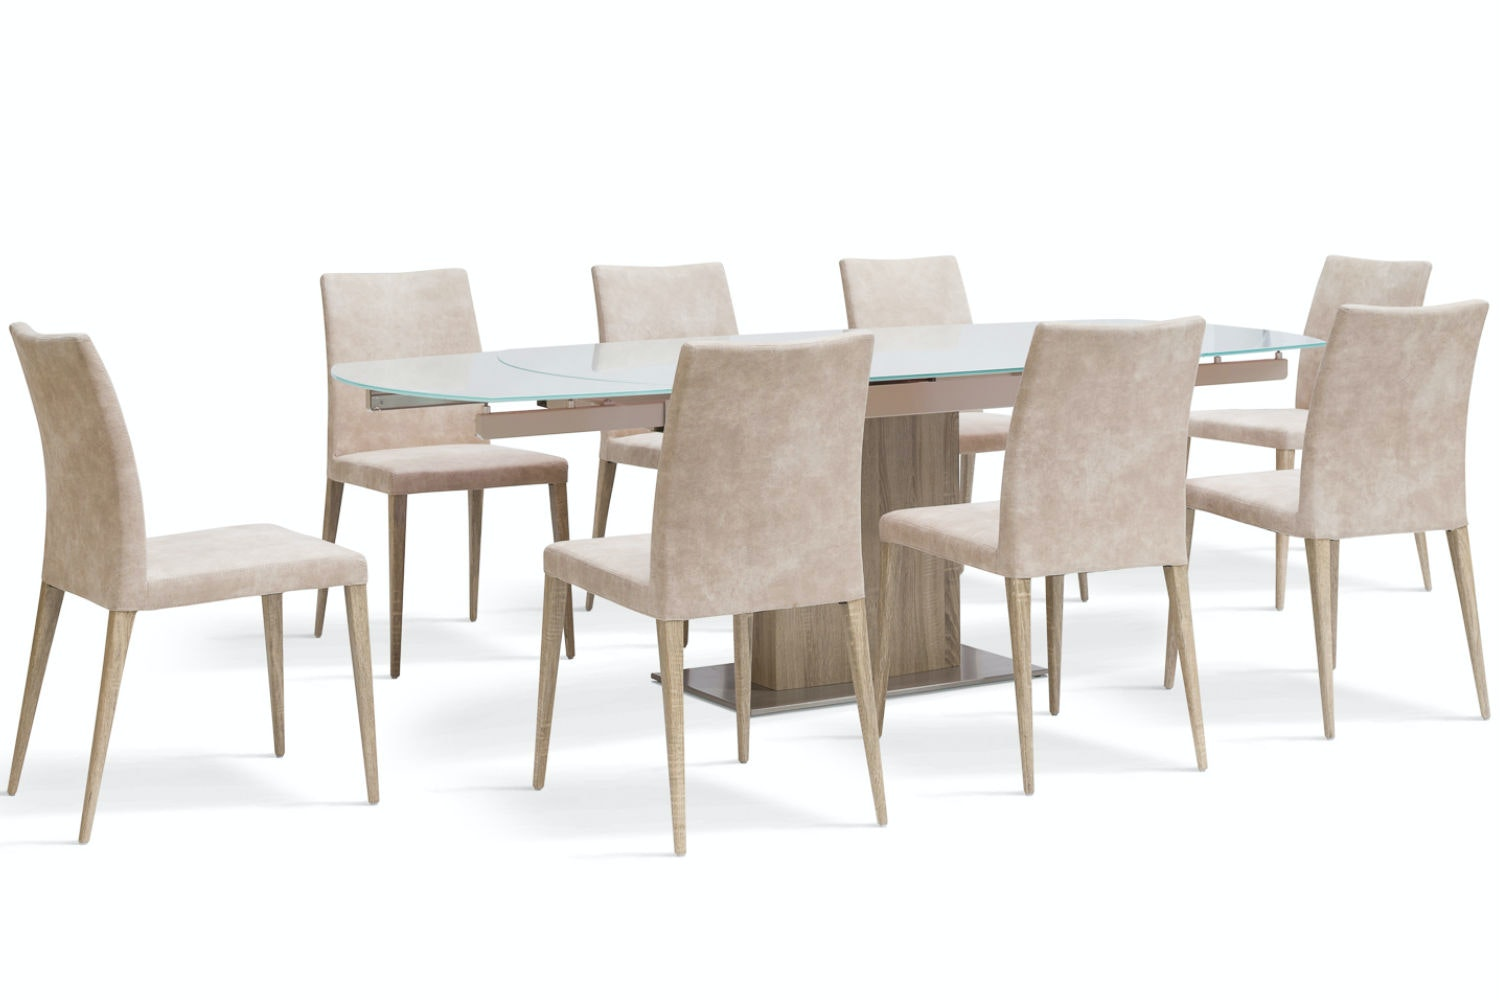 Lucci 9 Piece Dining Set | Low Calvino Dining Chairs | Light